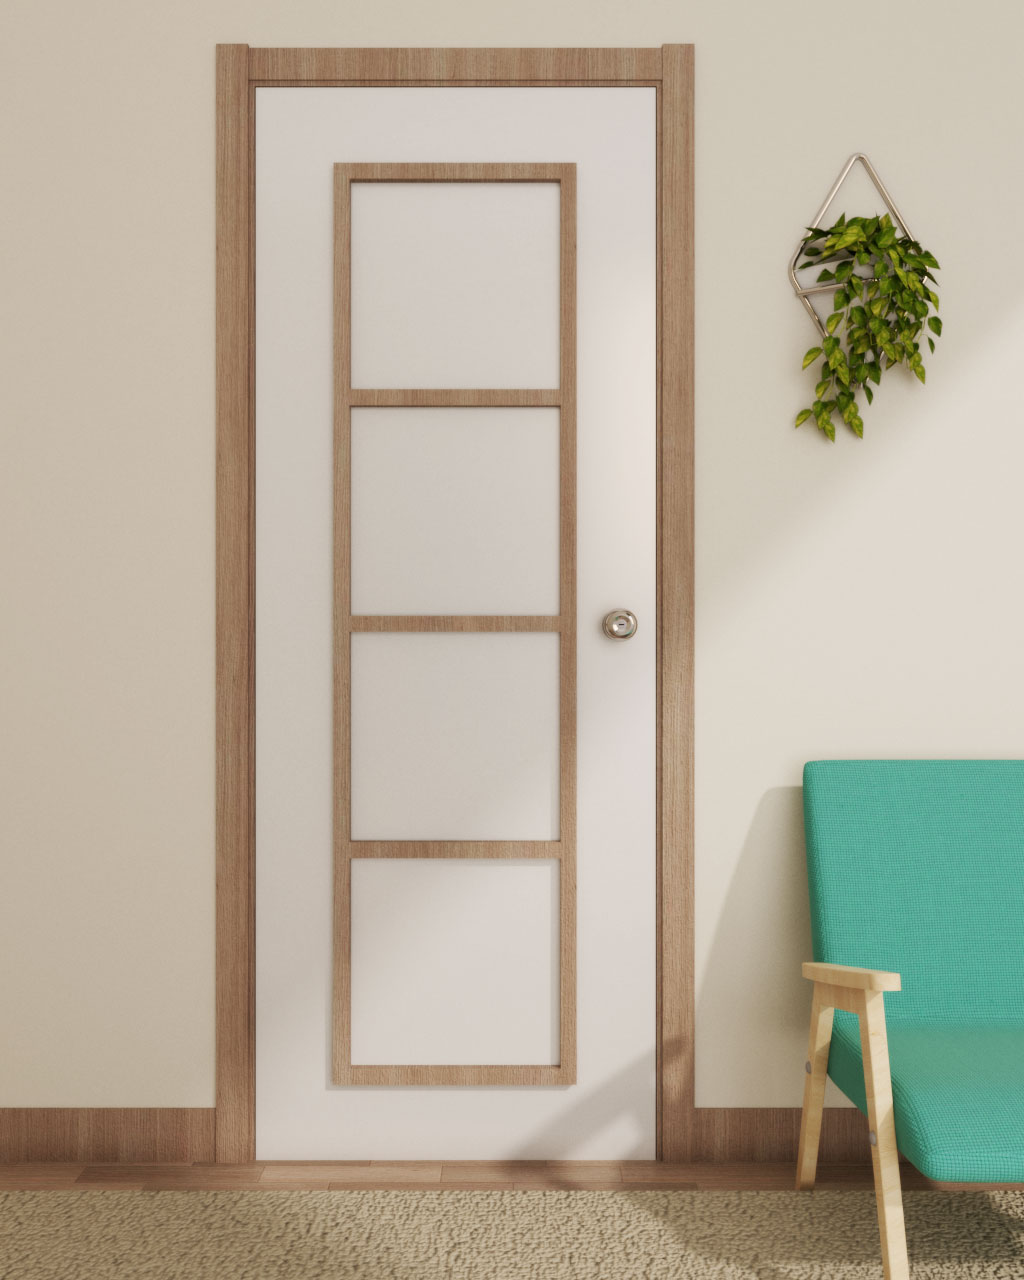 Decor Door using Wood Molding